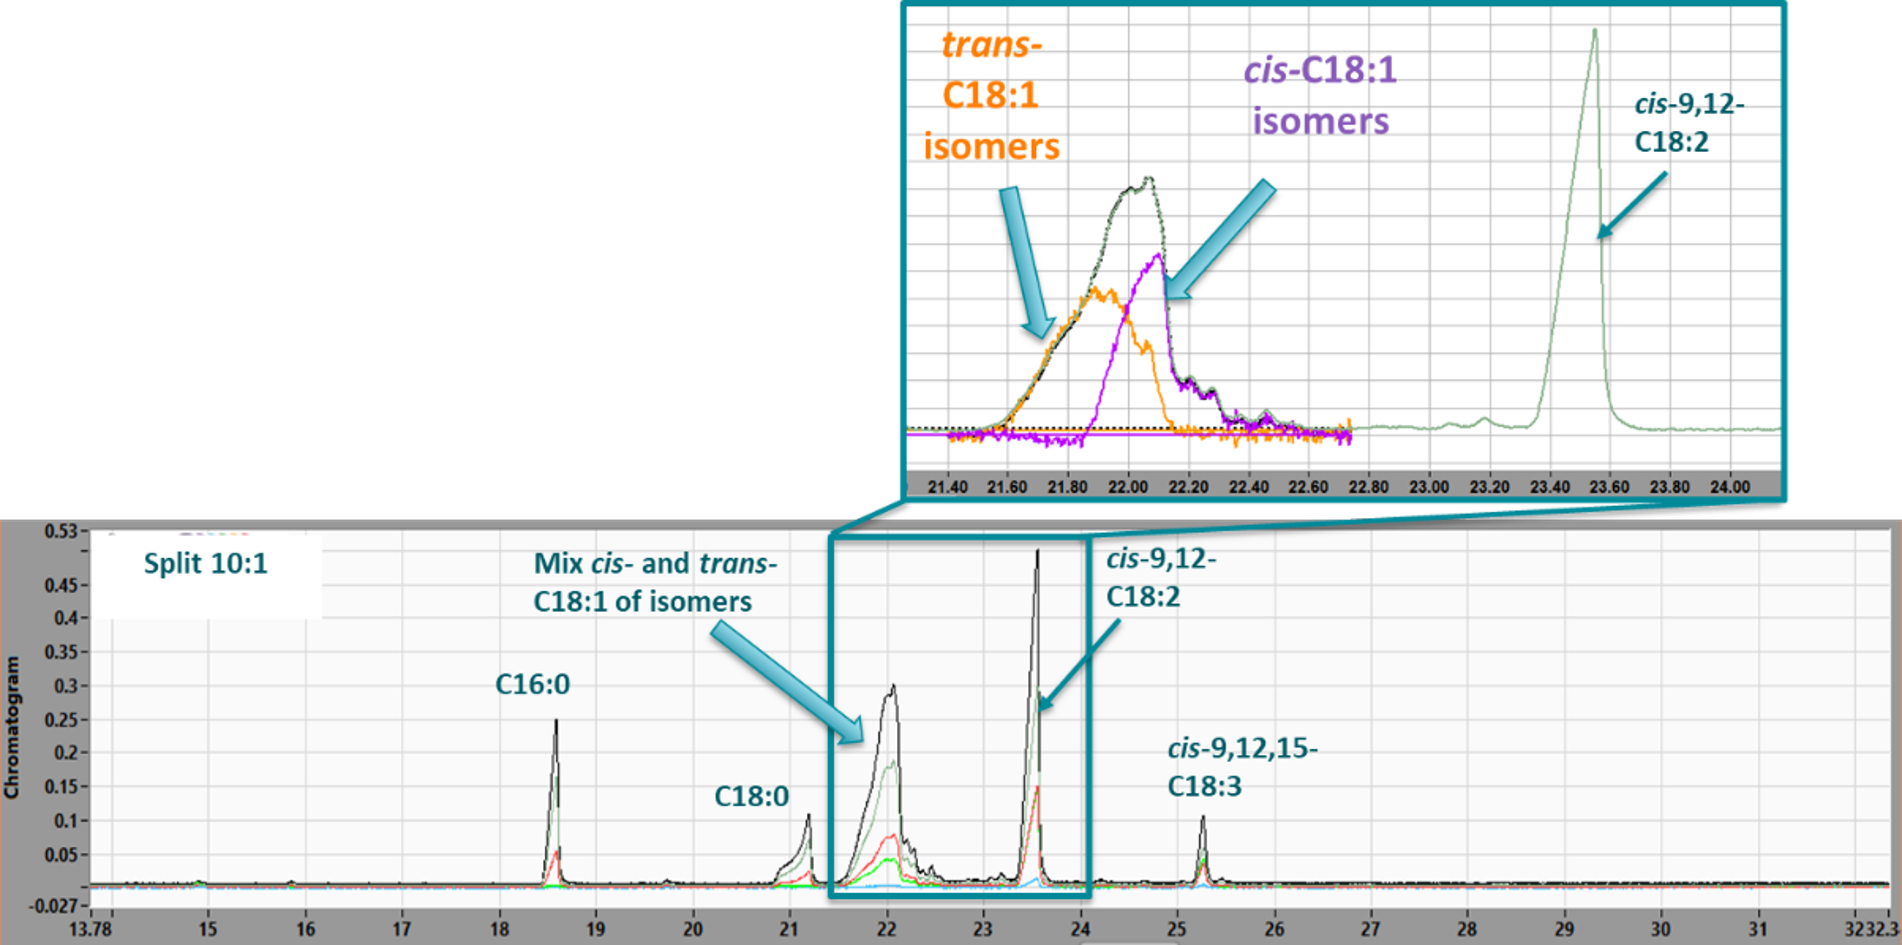 VUV absorption spectra deconvolution of cis and trans C18:1 FAME isomers in margarine containing PHVO. The GC column is a 100m x 0.25mm x 0.20µm Rt-2560.